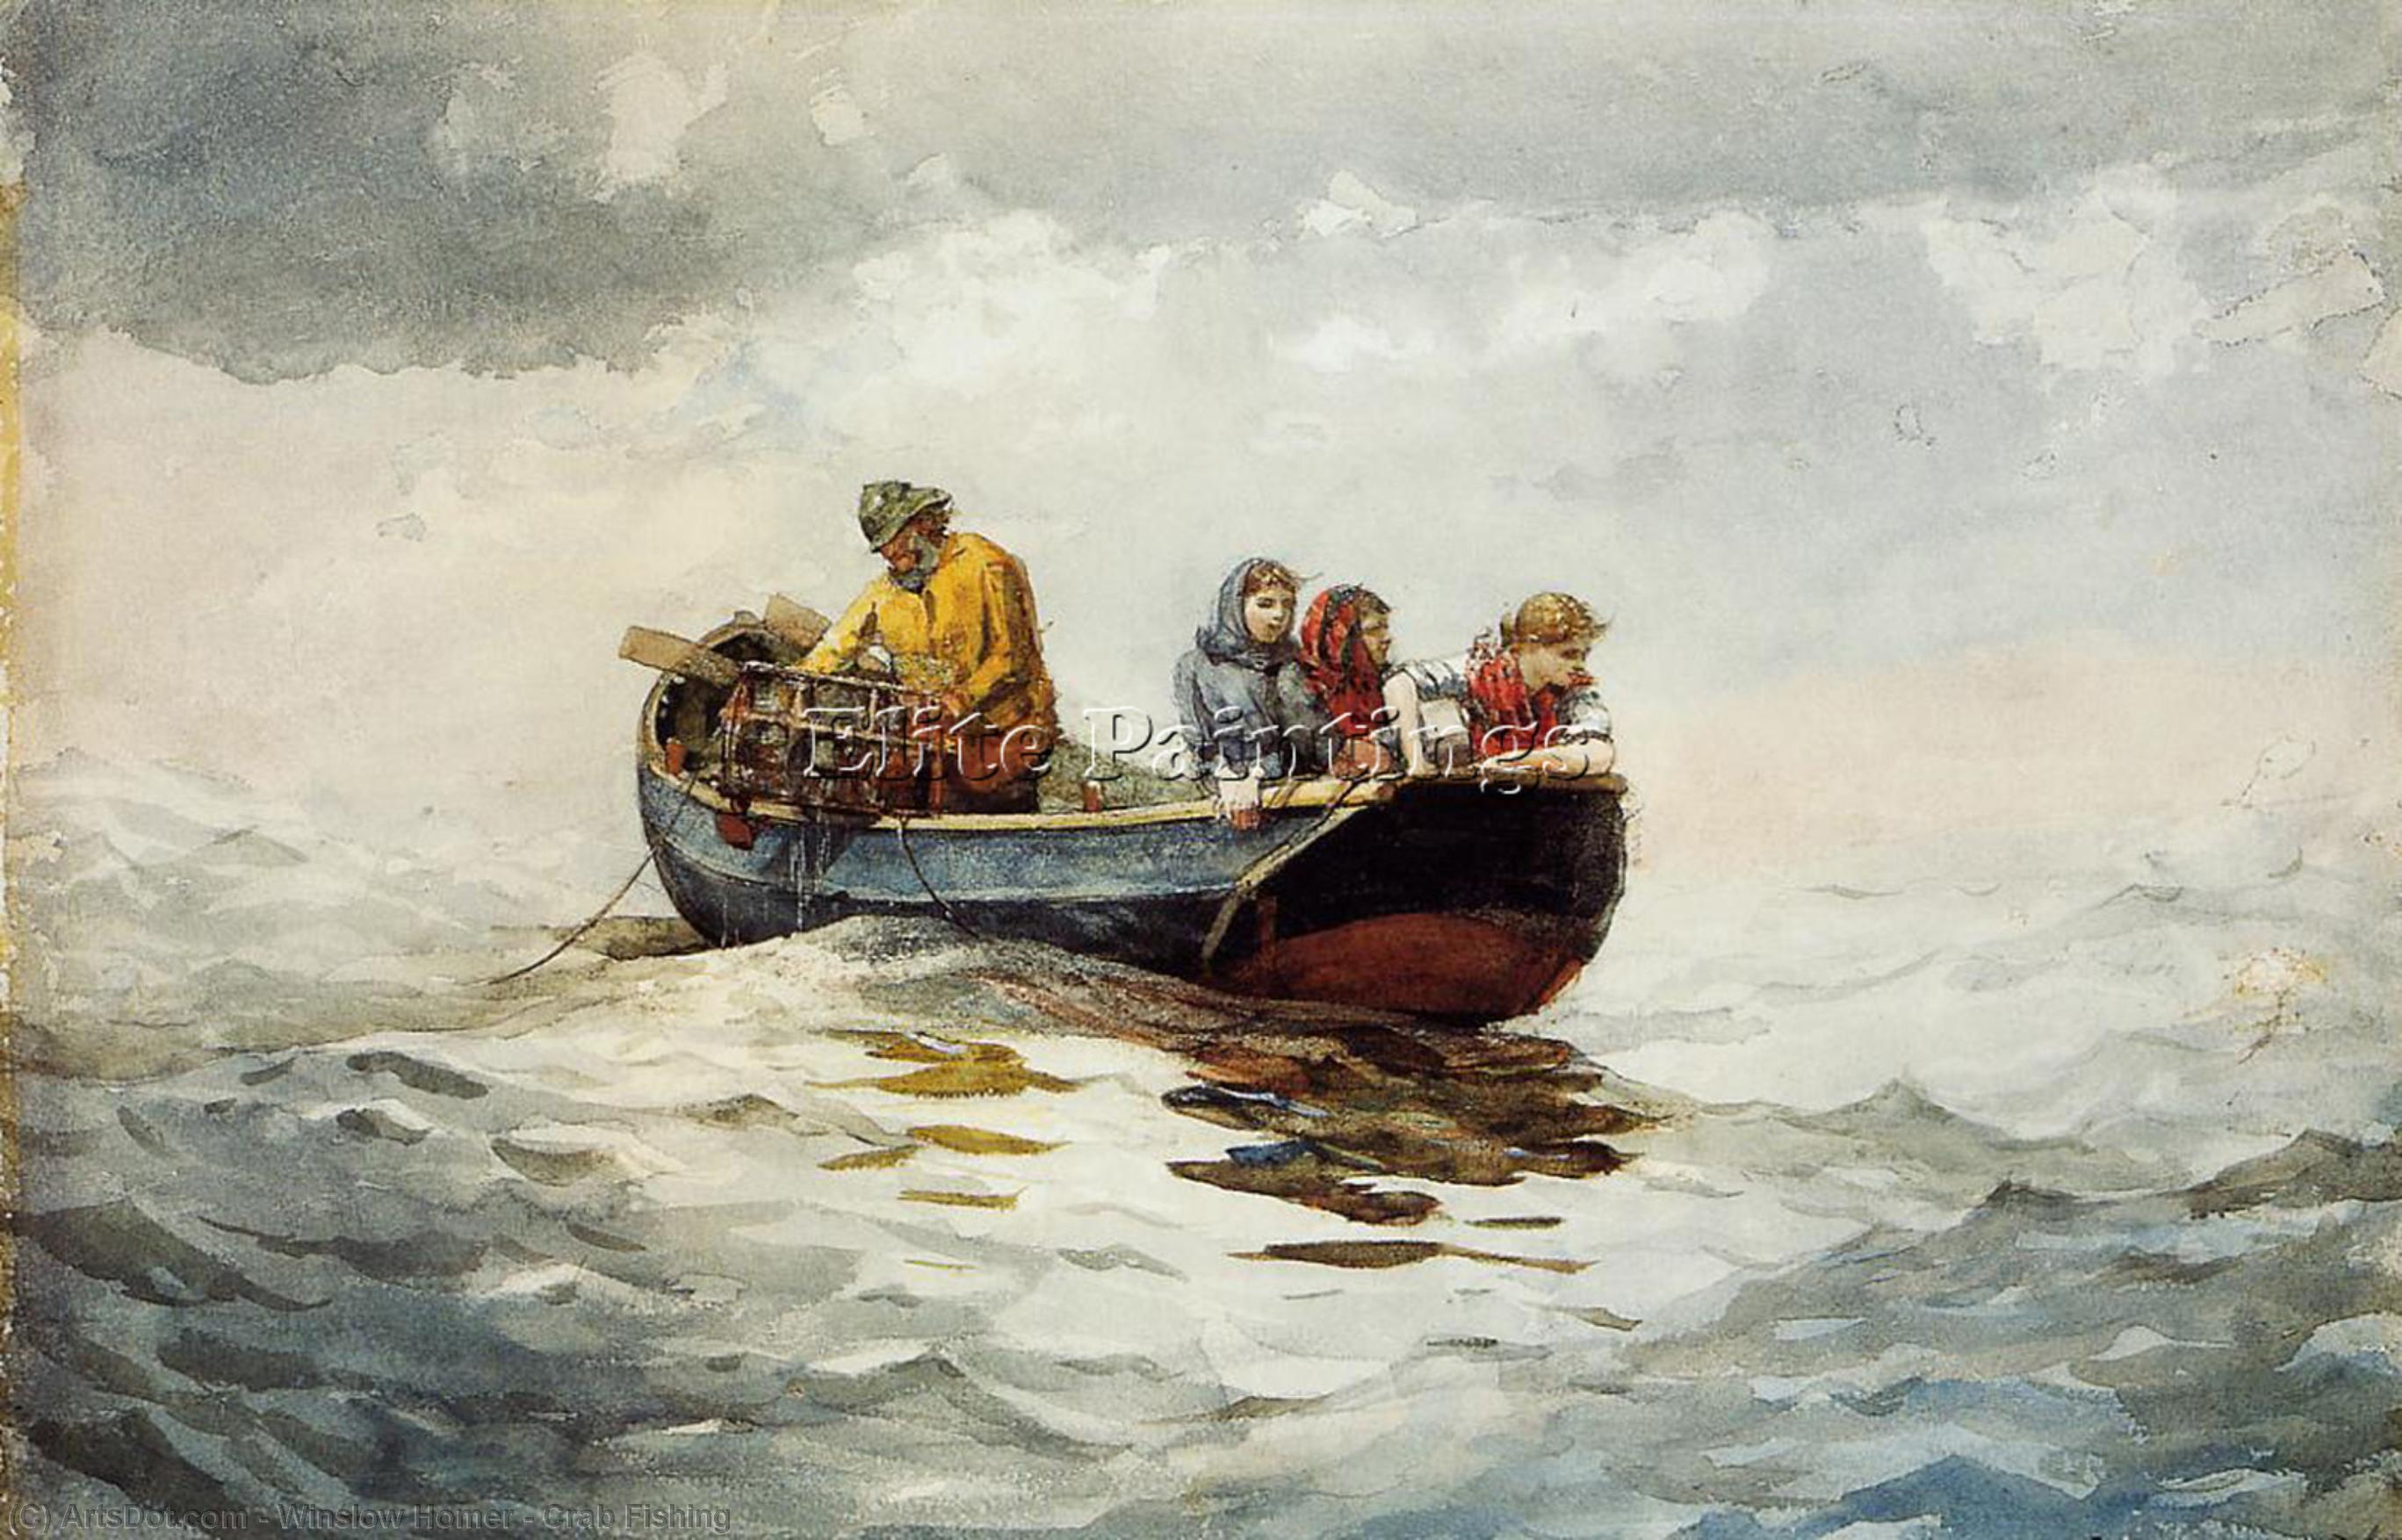 Crab Fishing, 1883 by Winslow Homer (1836-1910, United States) | Art Reproduction | ArtsDot.com